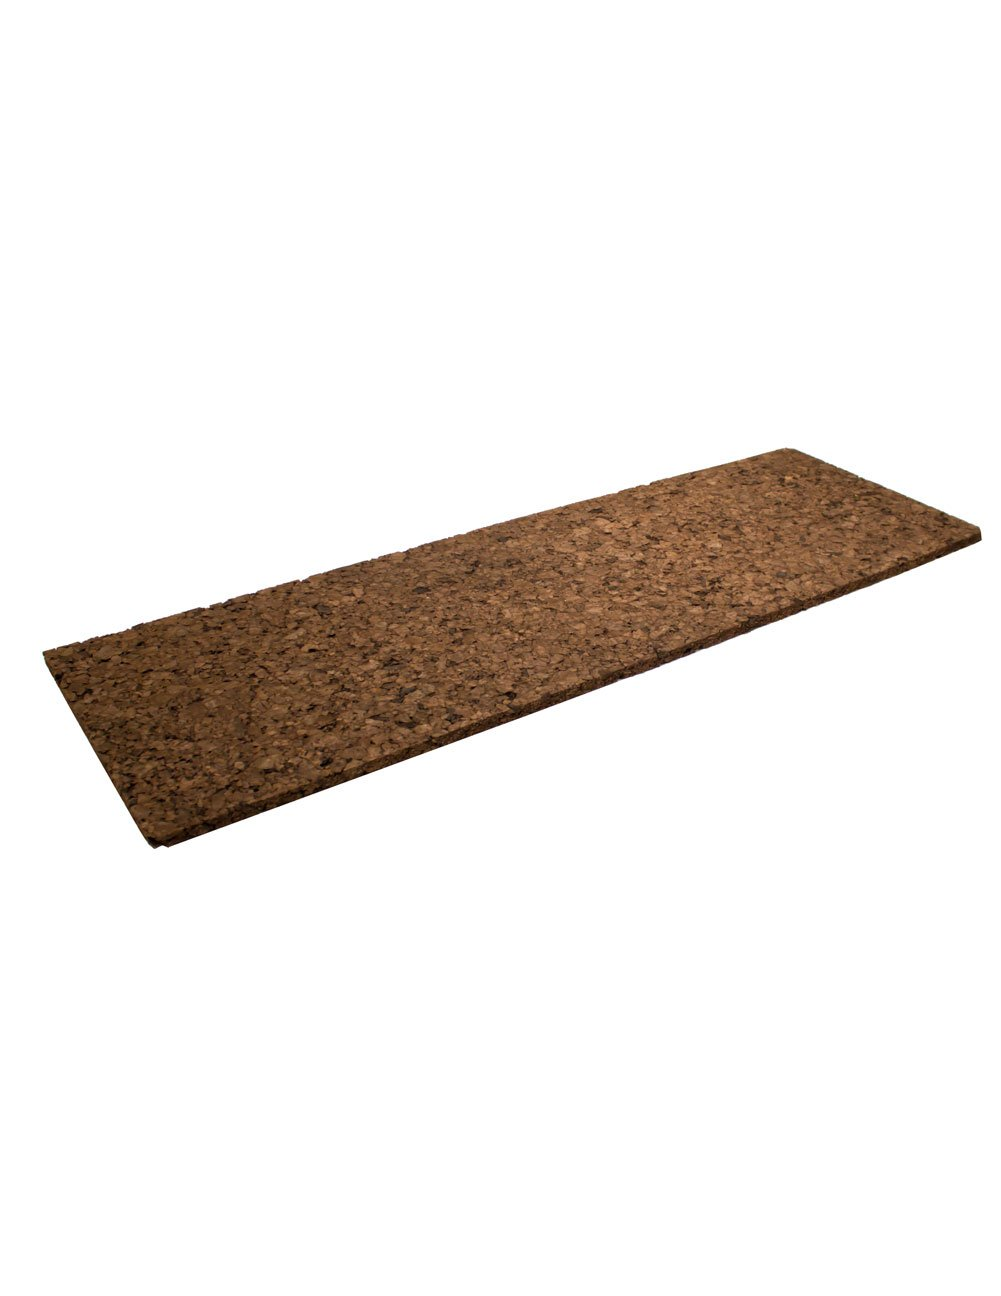 Brown Cork Sheet 12' X 36' X 1' Cleverbrand Inc.